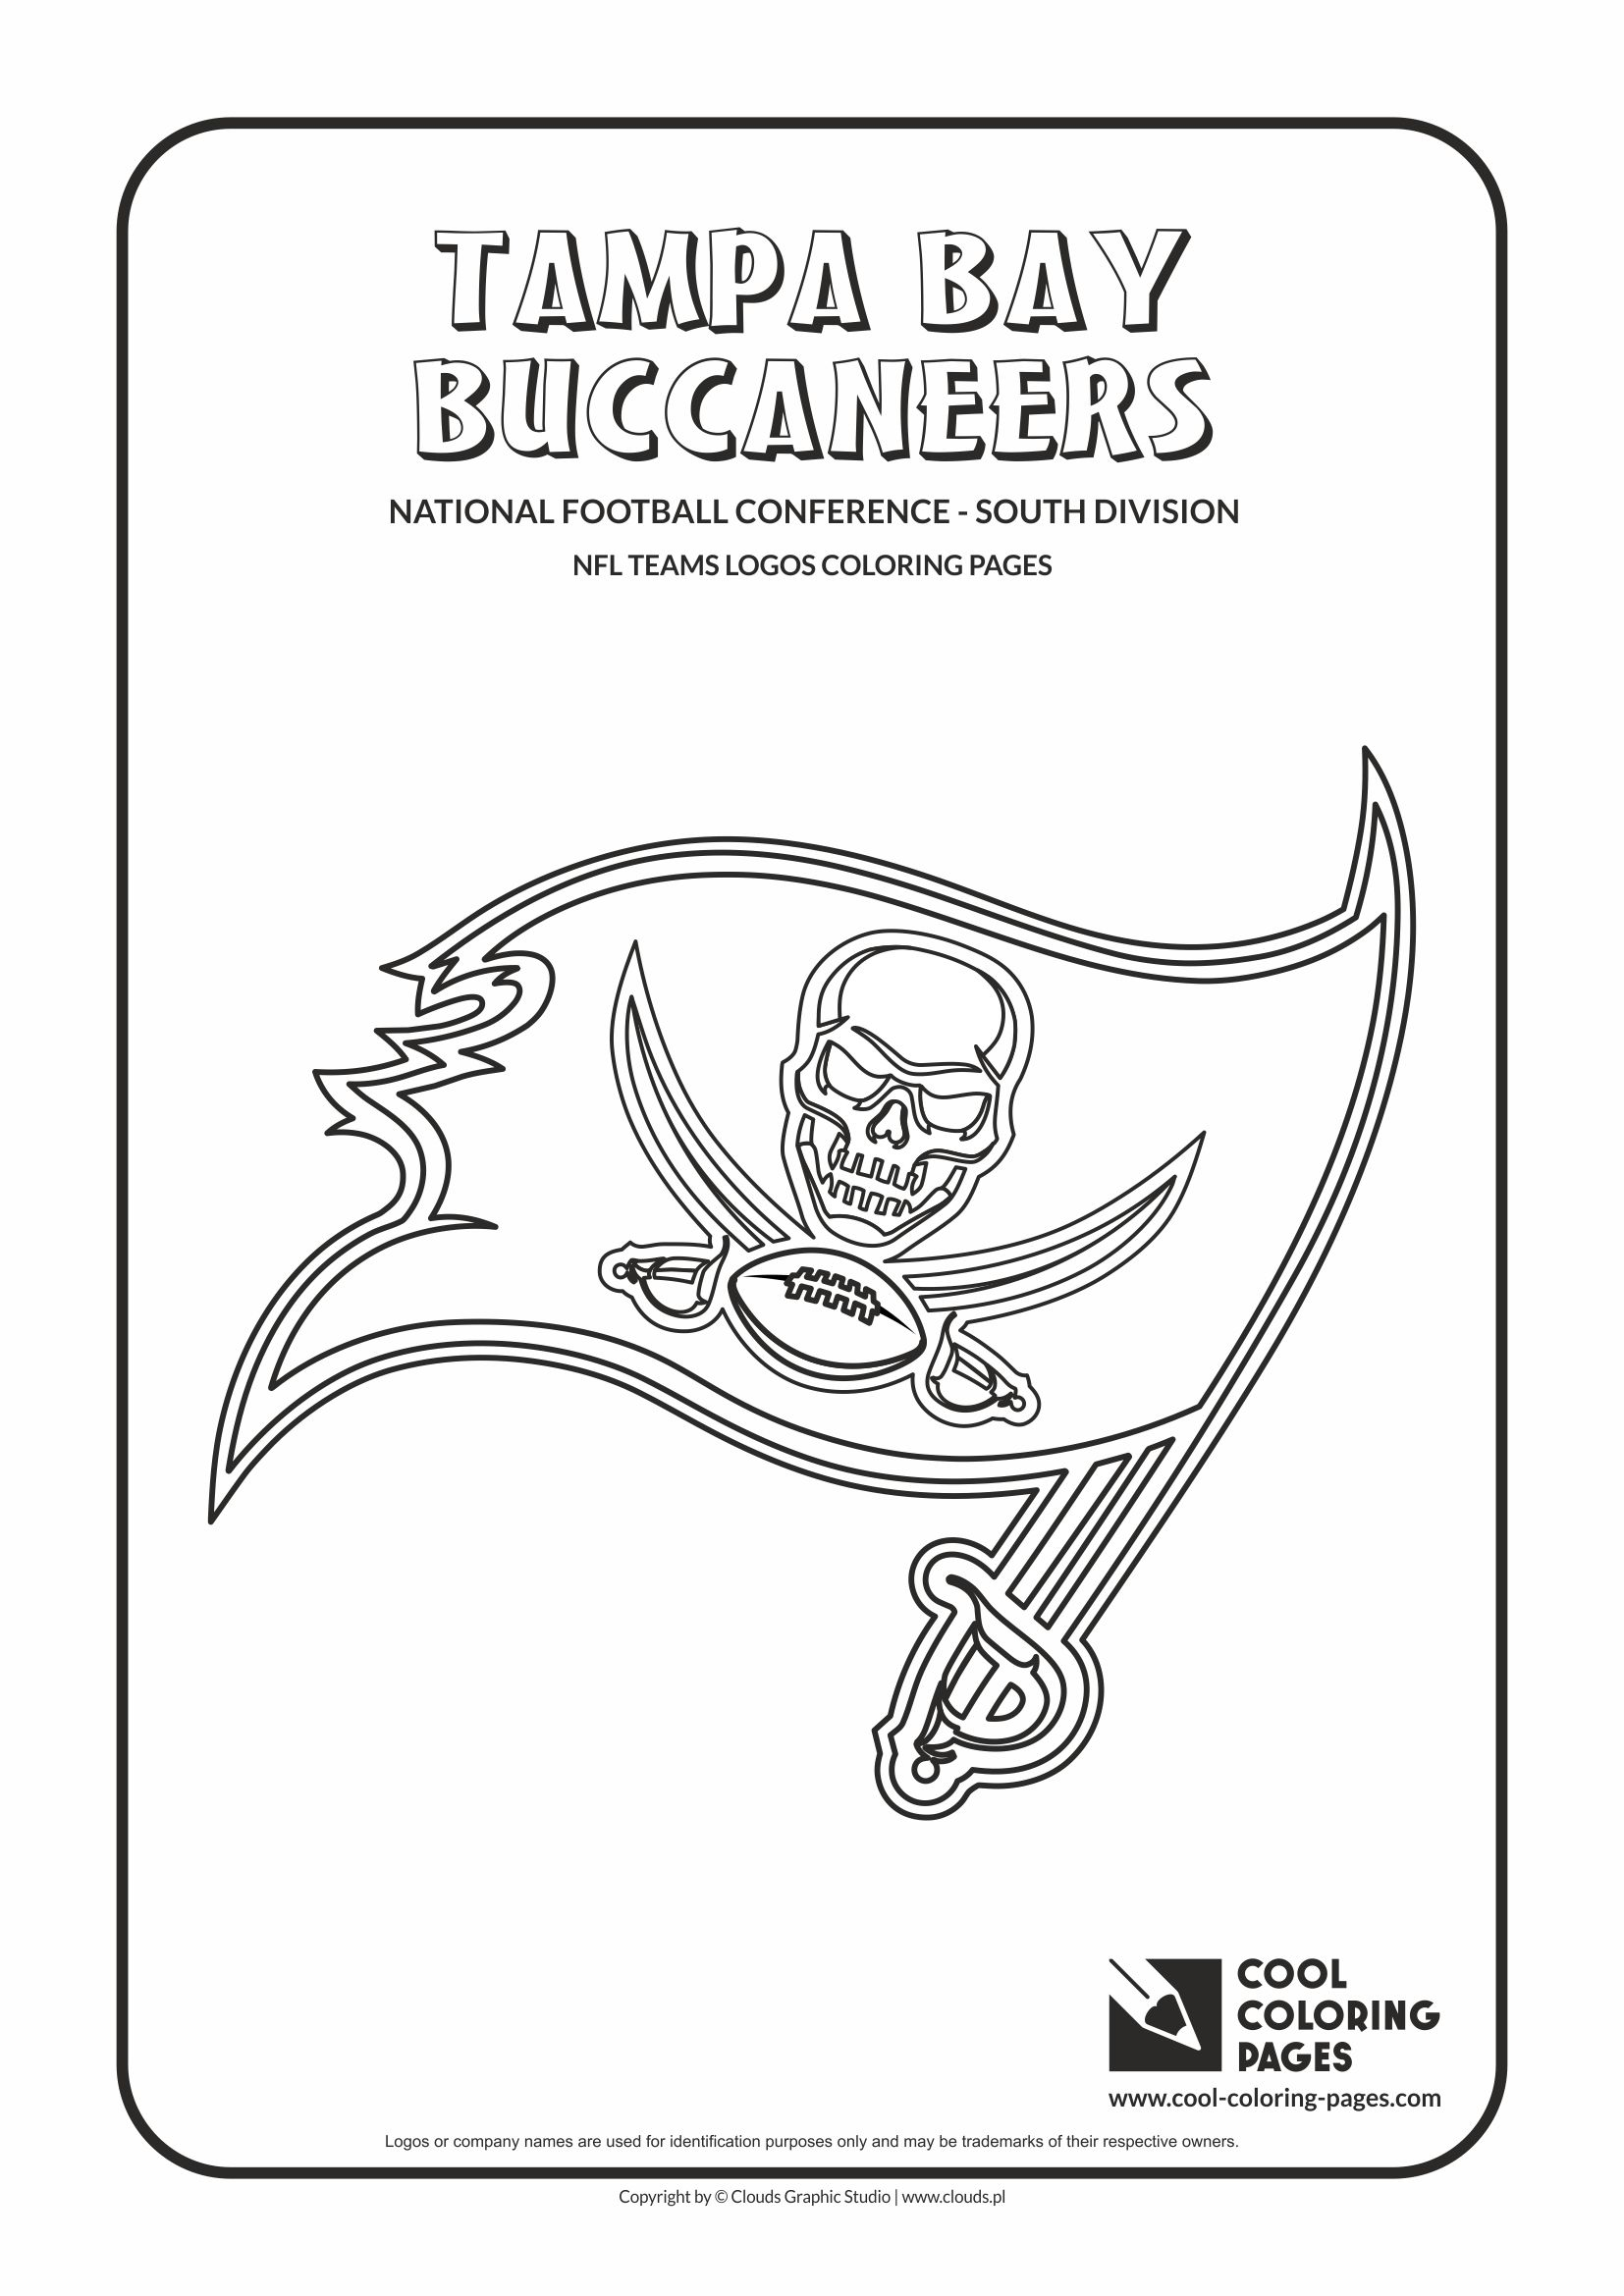 Cool coloring pages tampa bay buccaneers nfl american for Nfl team coloring pages